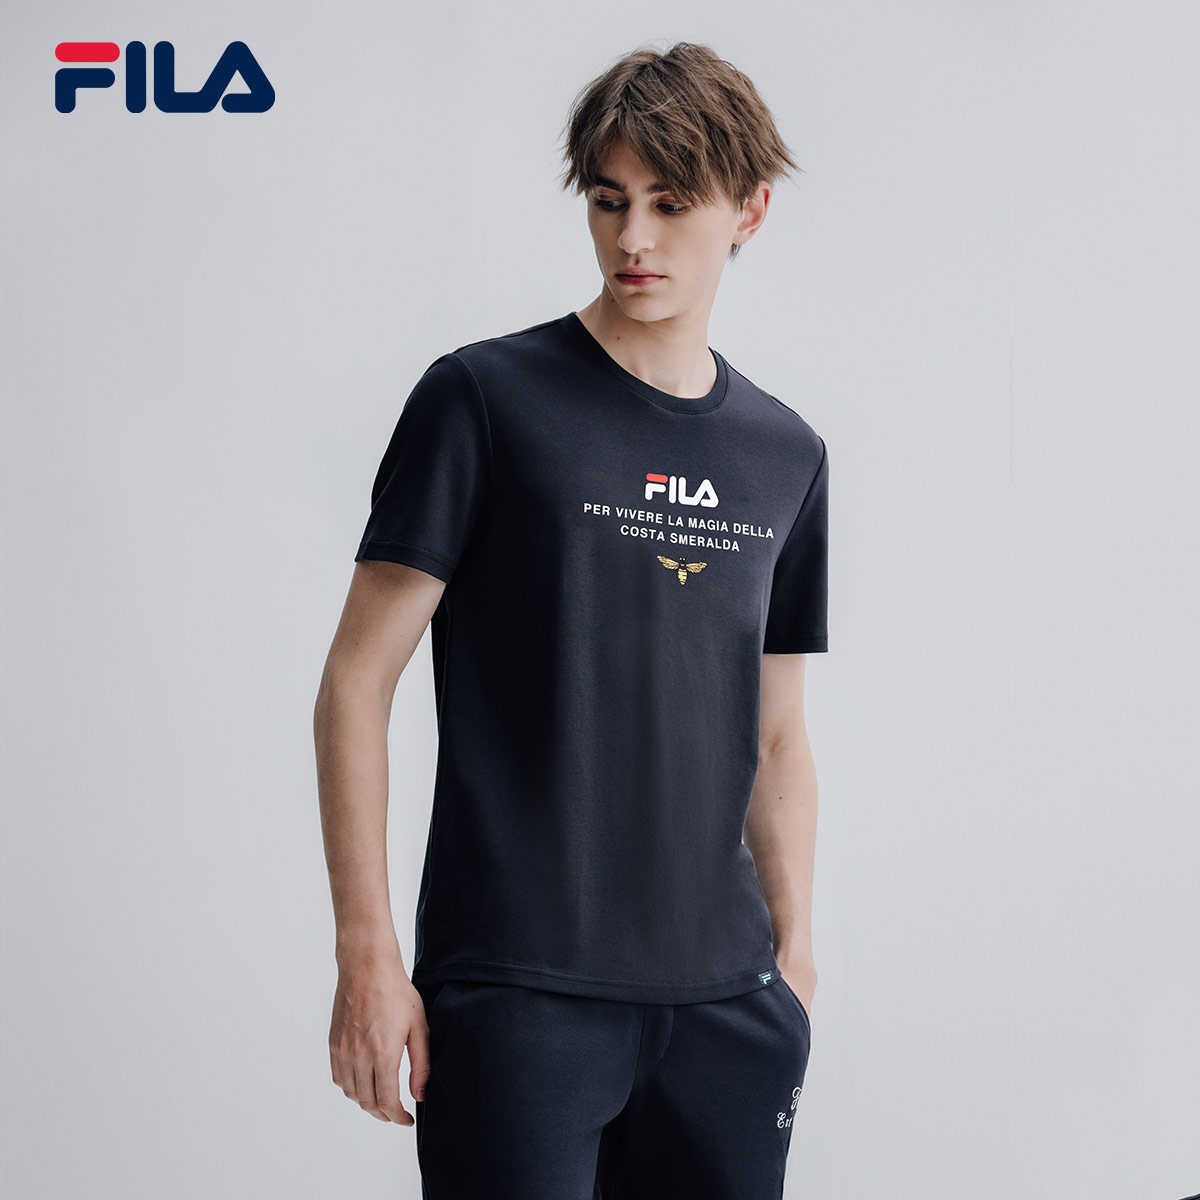 FILA Philharmonic official Huang Jingyu same short sleeve t-shirt men 2020 summer sports fashion all-around half sleeve short sleeve T-shirt